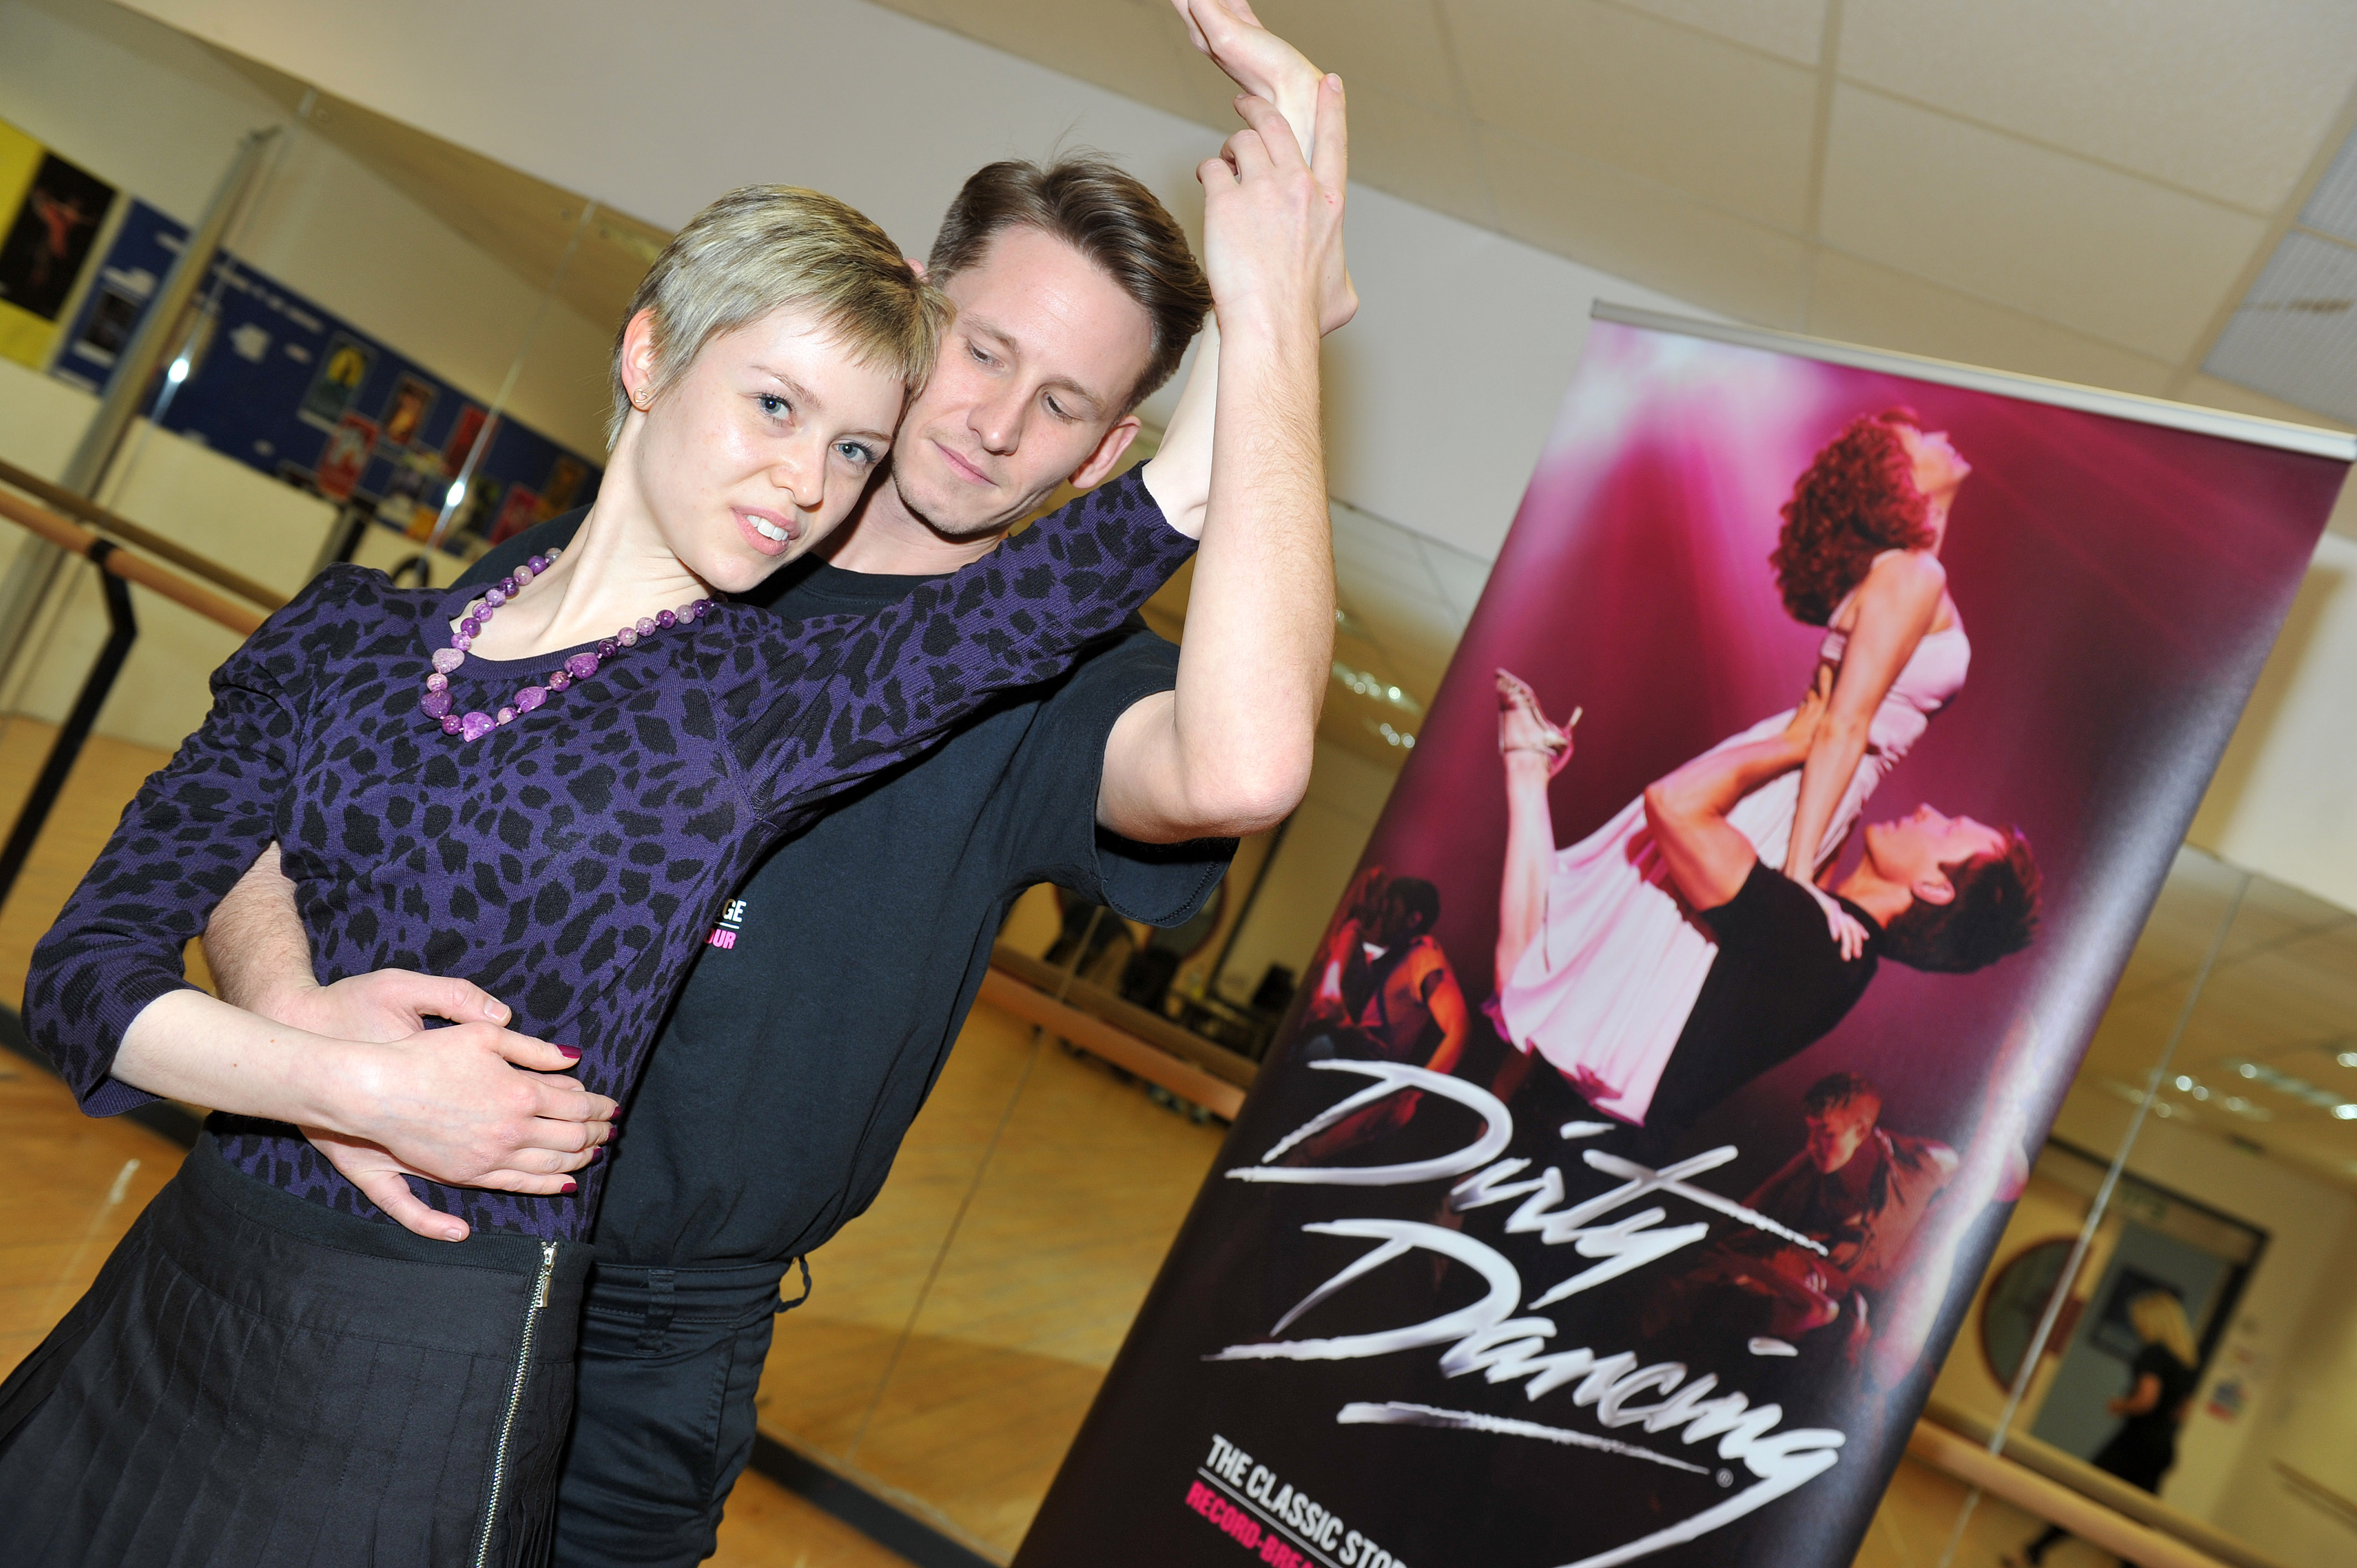 """Dirty Dancing press launch, February 2014. Georgina Butler recreates the Dirty Dancing """"tickle"""" pose with James Bennett."""